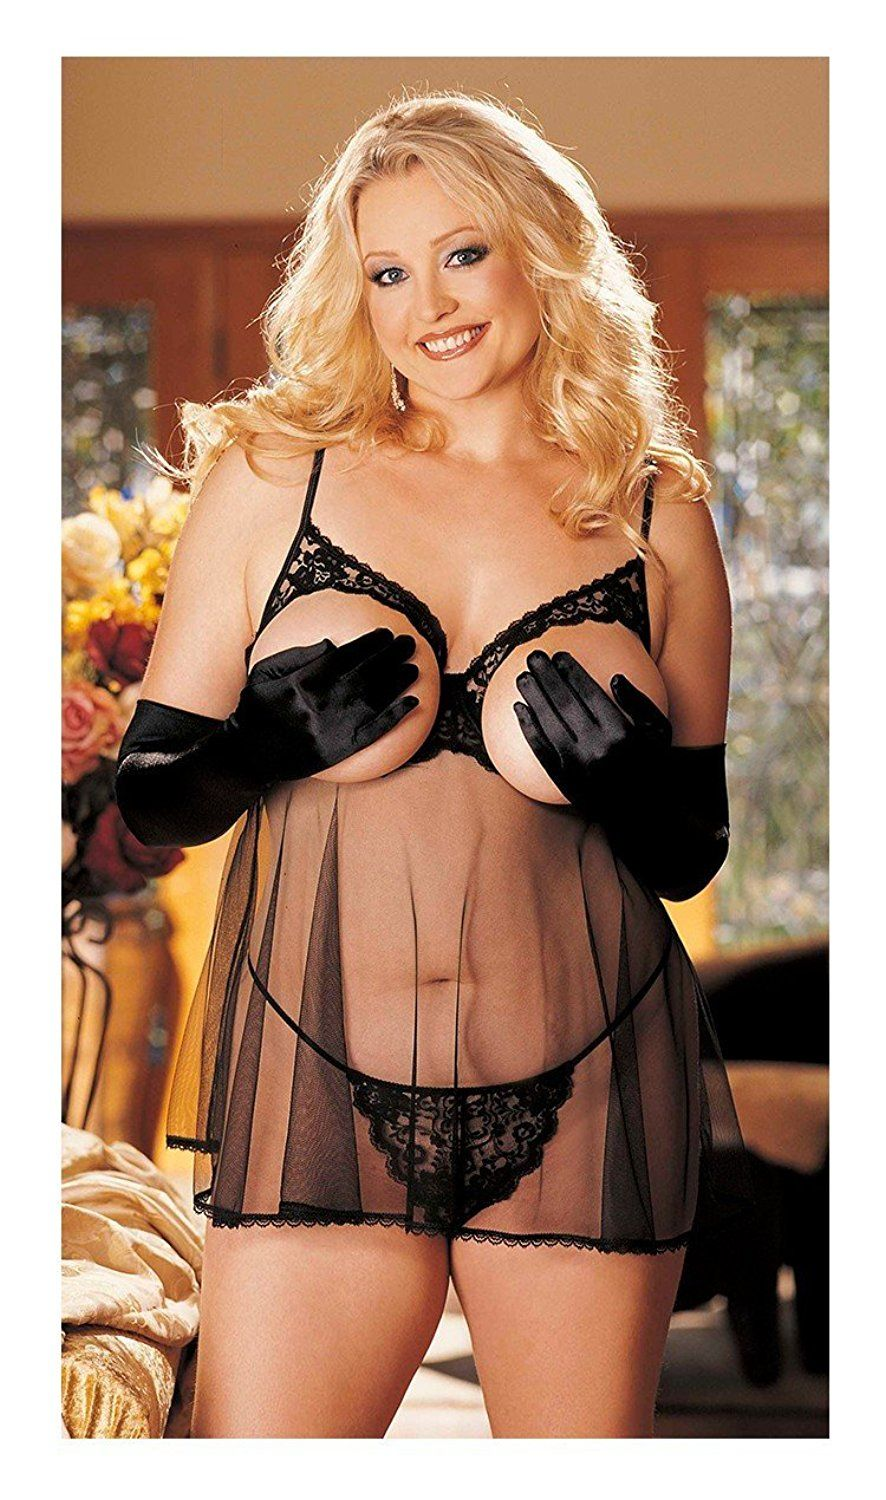 af122b156 Adam €‡s Temptation Women €‡s Luscious Black Sheer Mesh Open Cup Babydoll  Plus   Insider s special review you can t miss. Read more   Plus size  lingerie